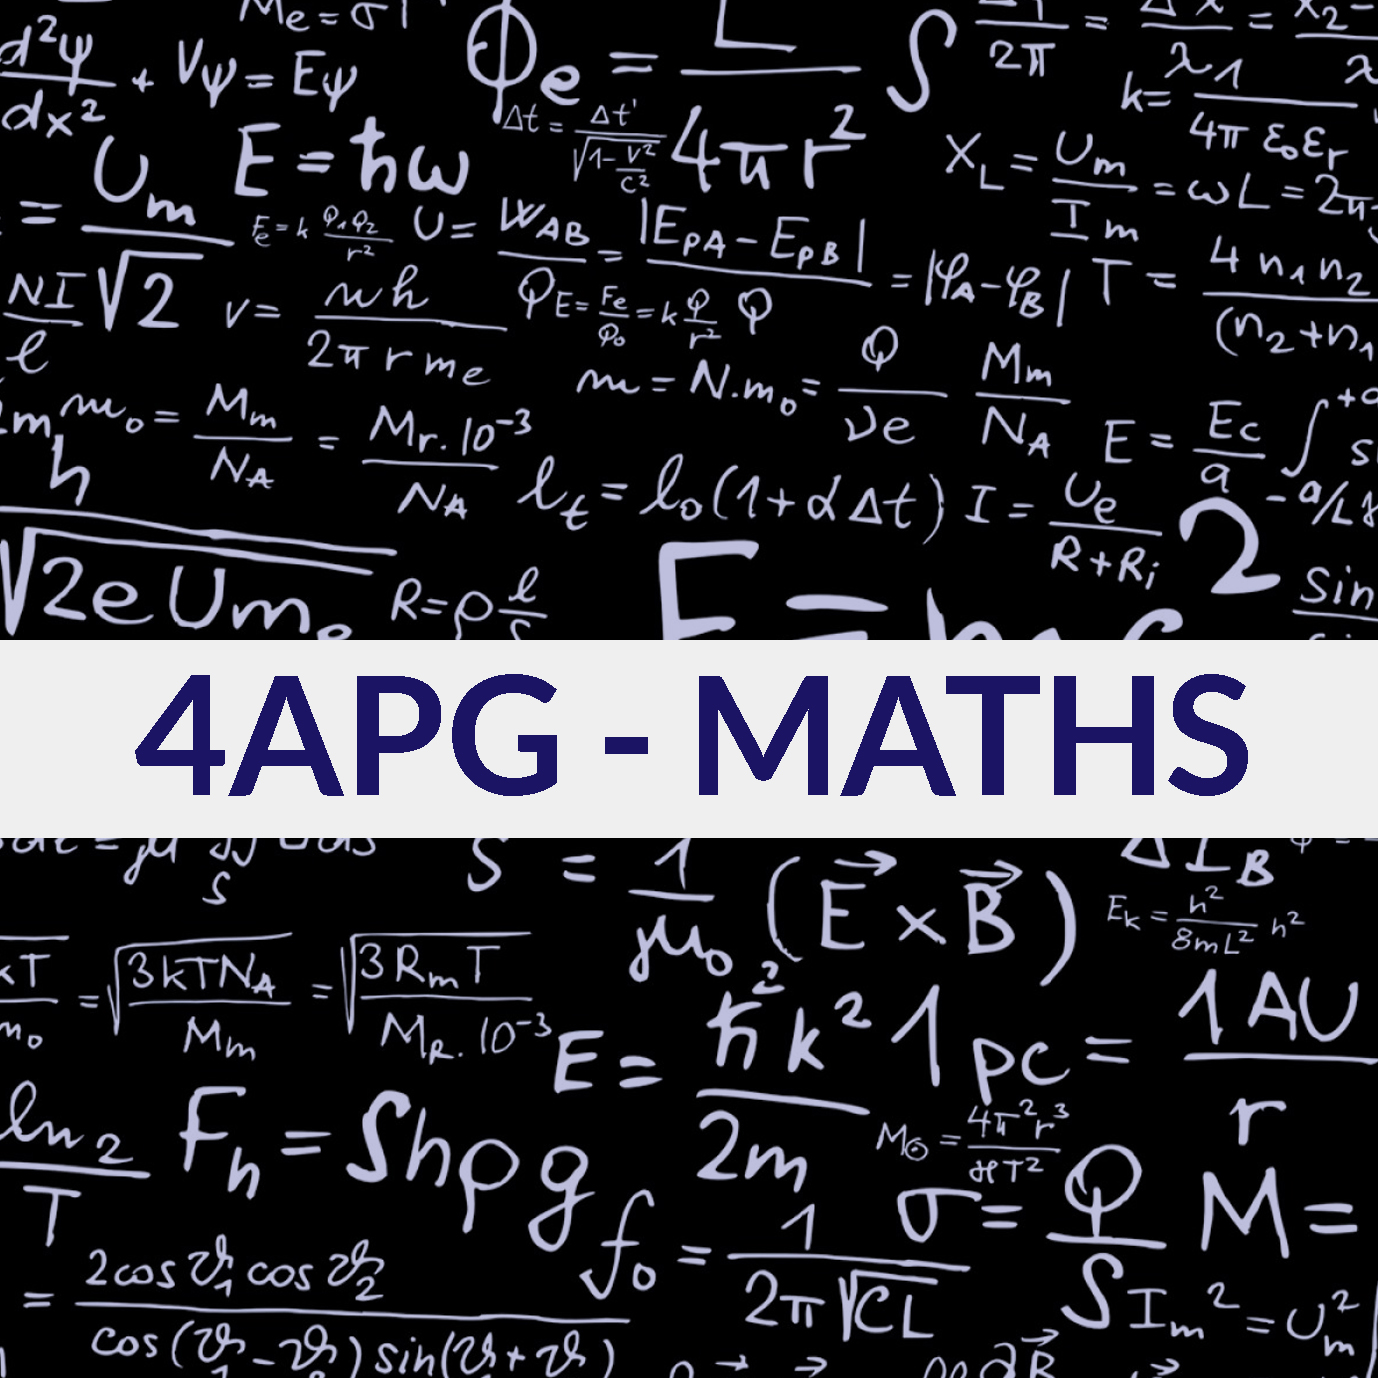 4APG-Maths course image